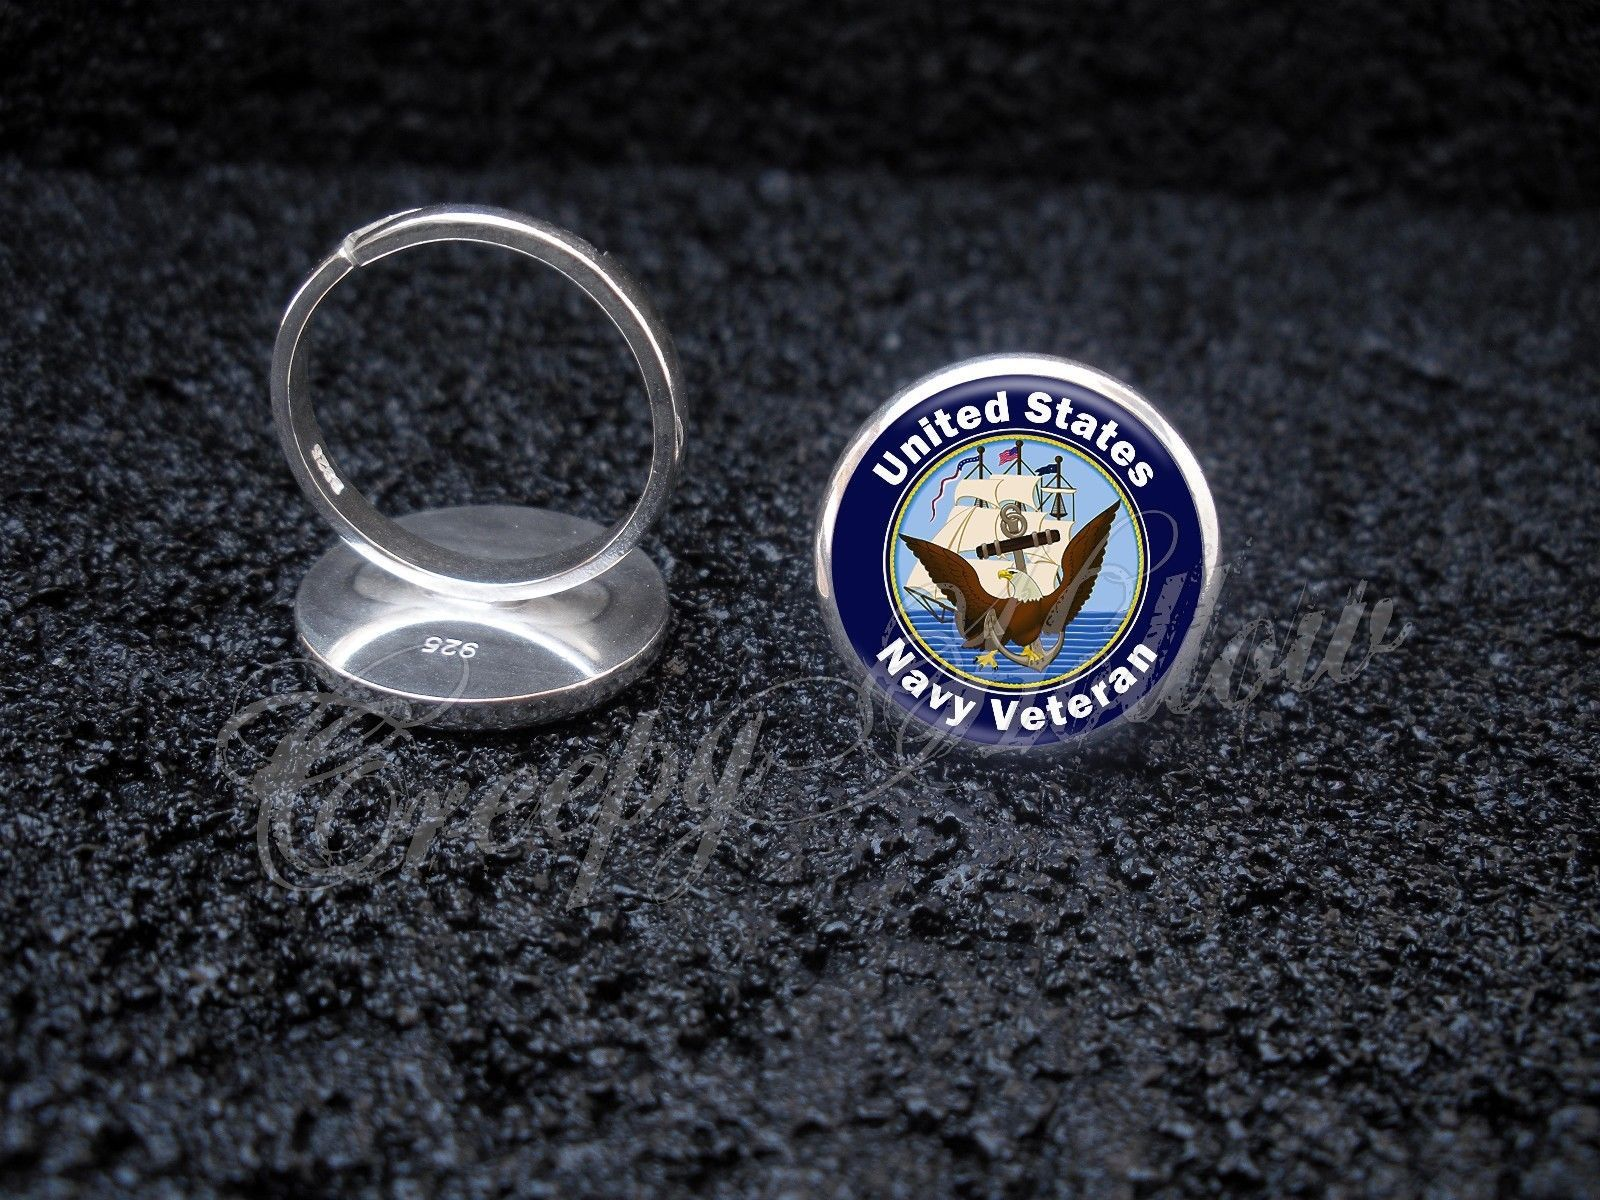 Primary image for 925 Sterling Silver Adjustable Ring United States Navy Veteran